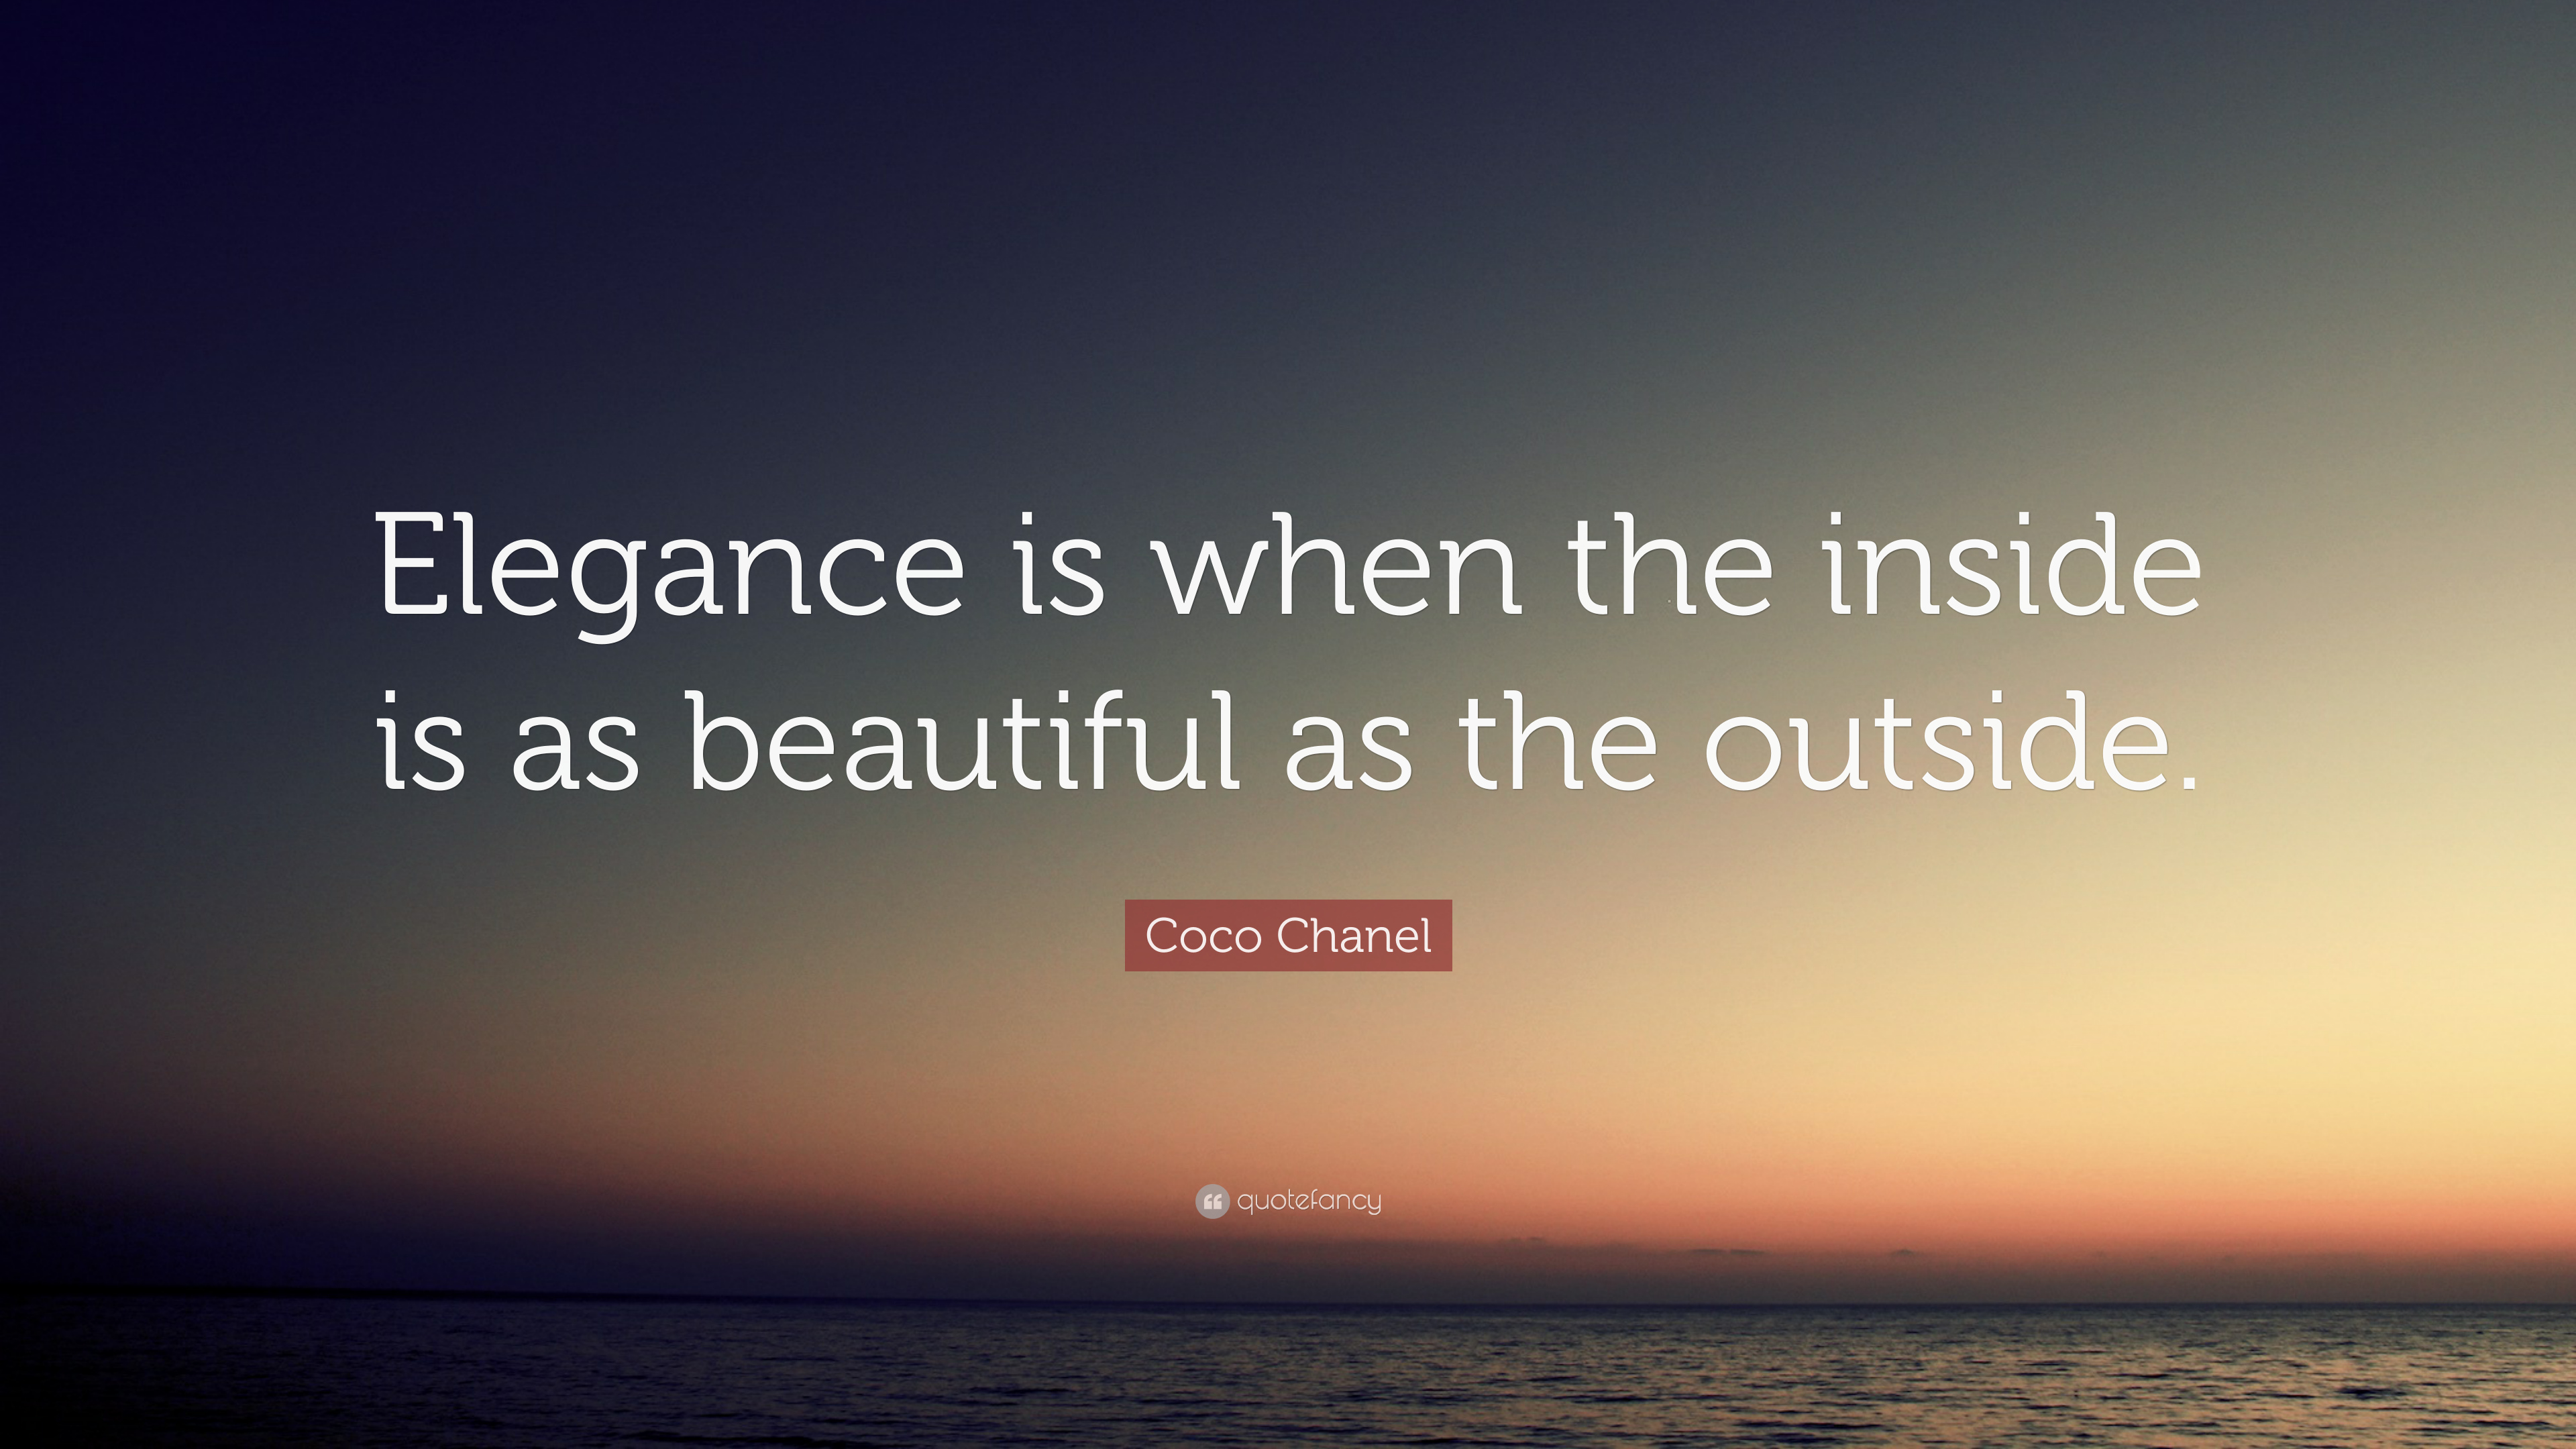 Coco Chanel Quote Elegance Is When The Inside Is As